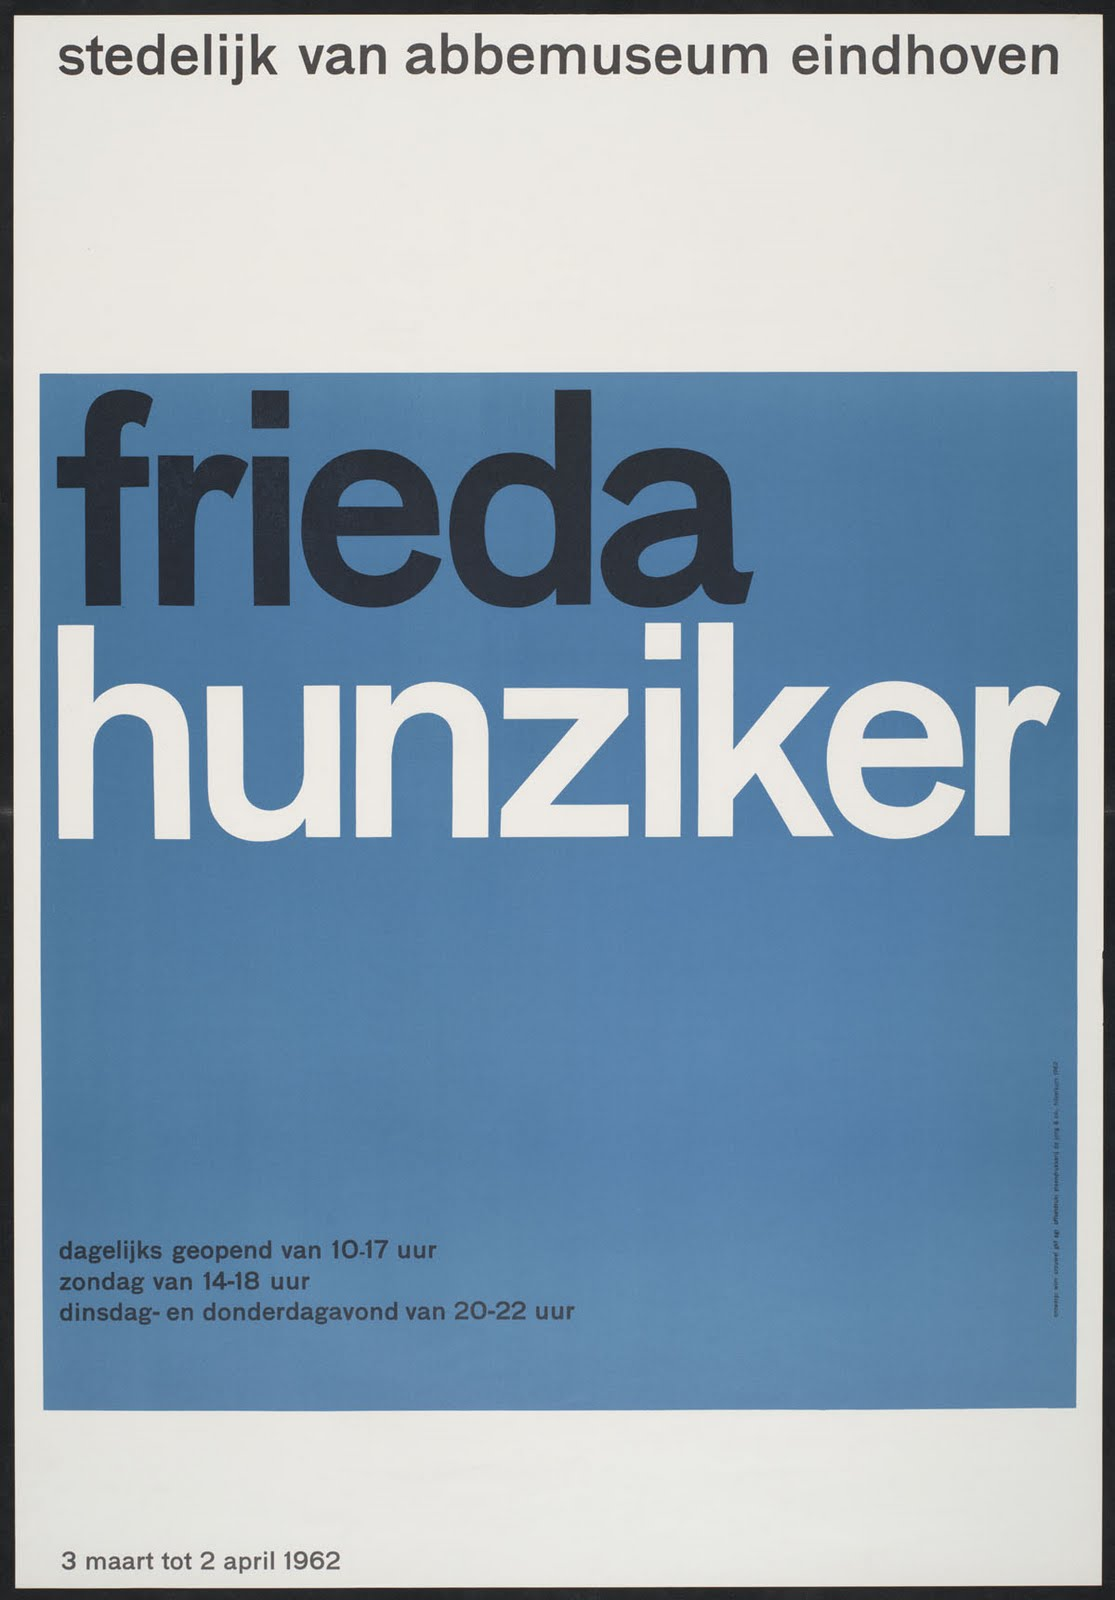 Wim Crouwel Poster Archive | Shelby White - The blog of ...